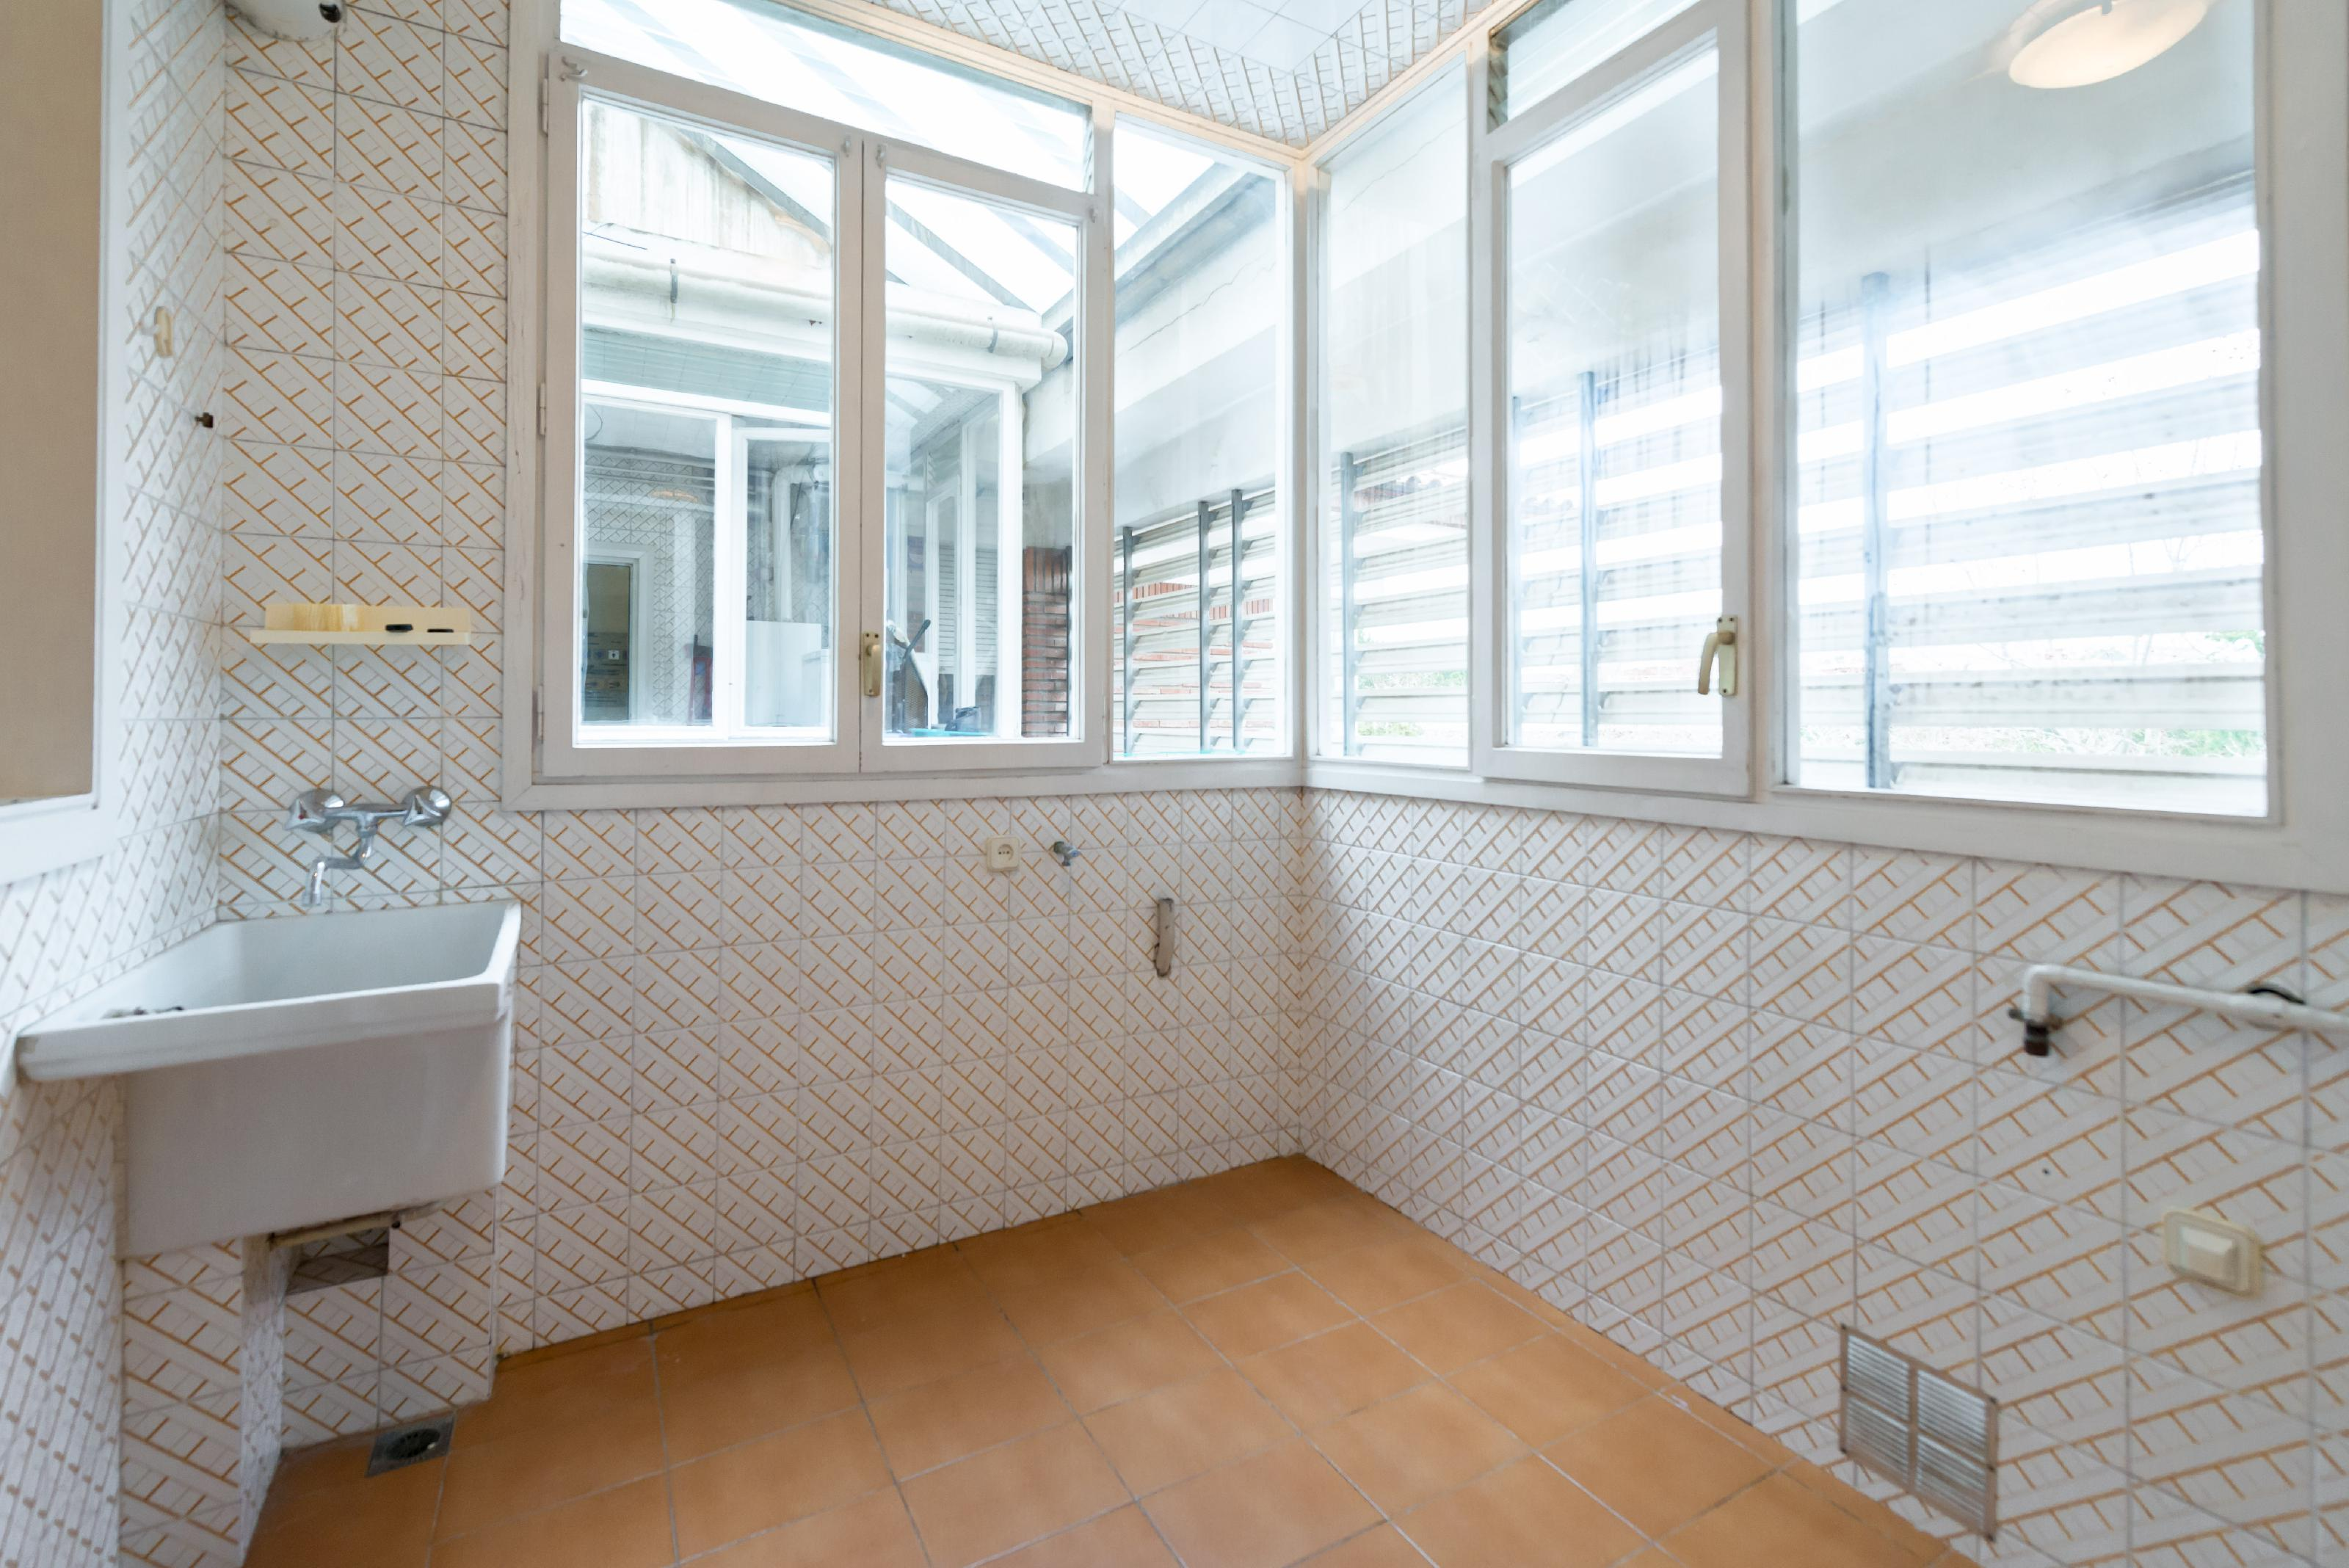 245495 Penthouse for sale in Les Corts, Pedralbes 14